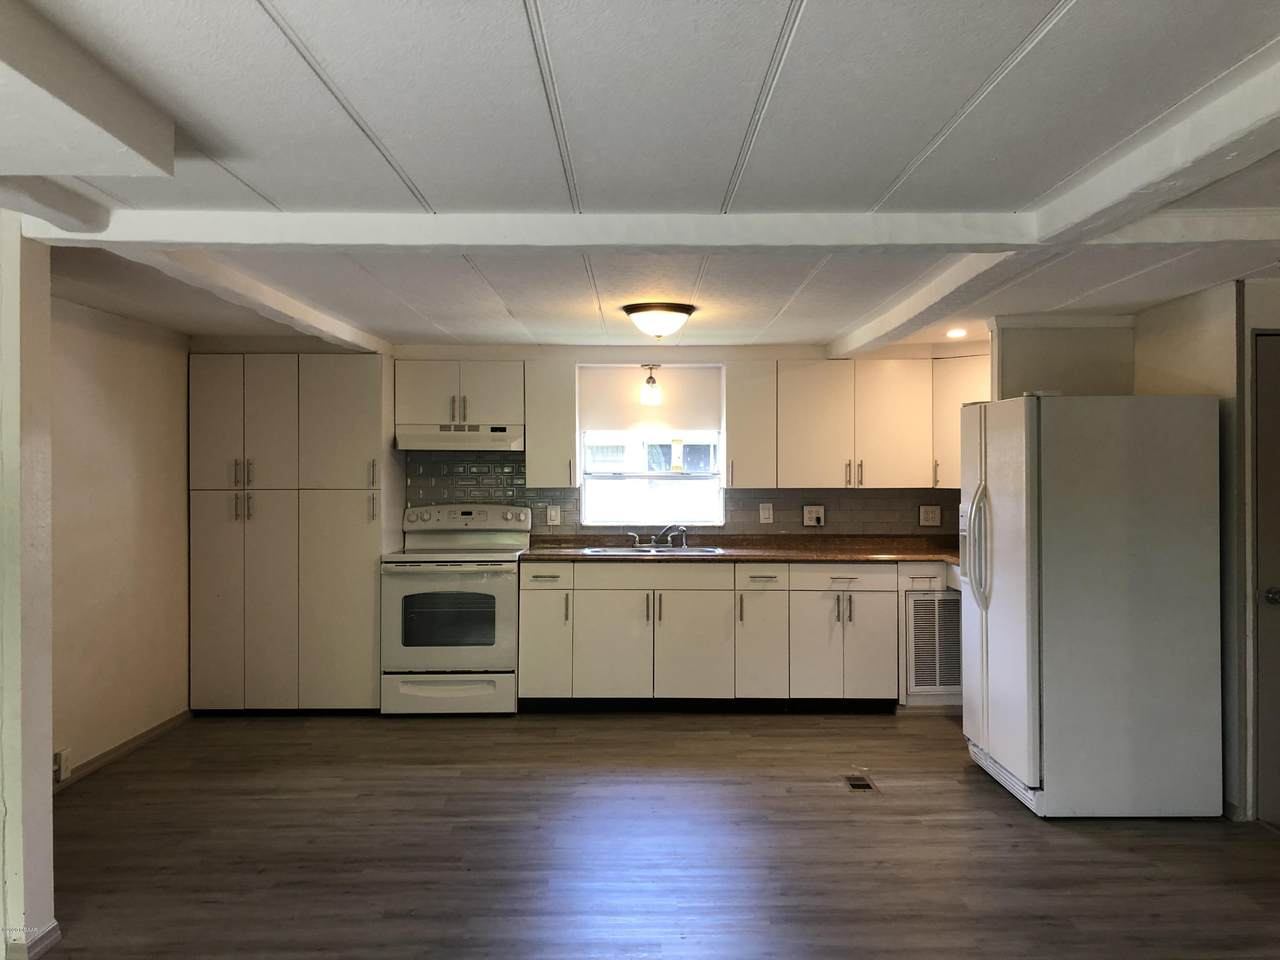 https://bt-photos.global.ssl.fastly.net/daytonabeach/1280_boomver_1_1074957-2.jpg